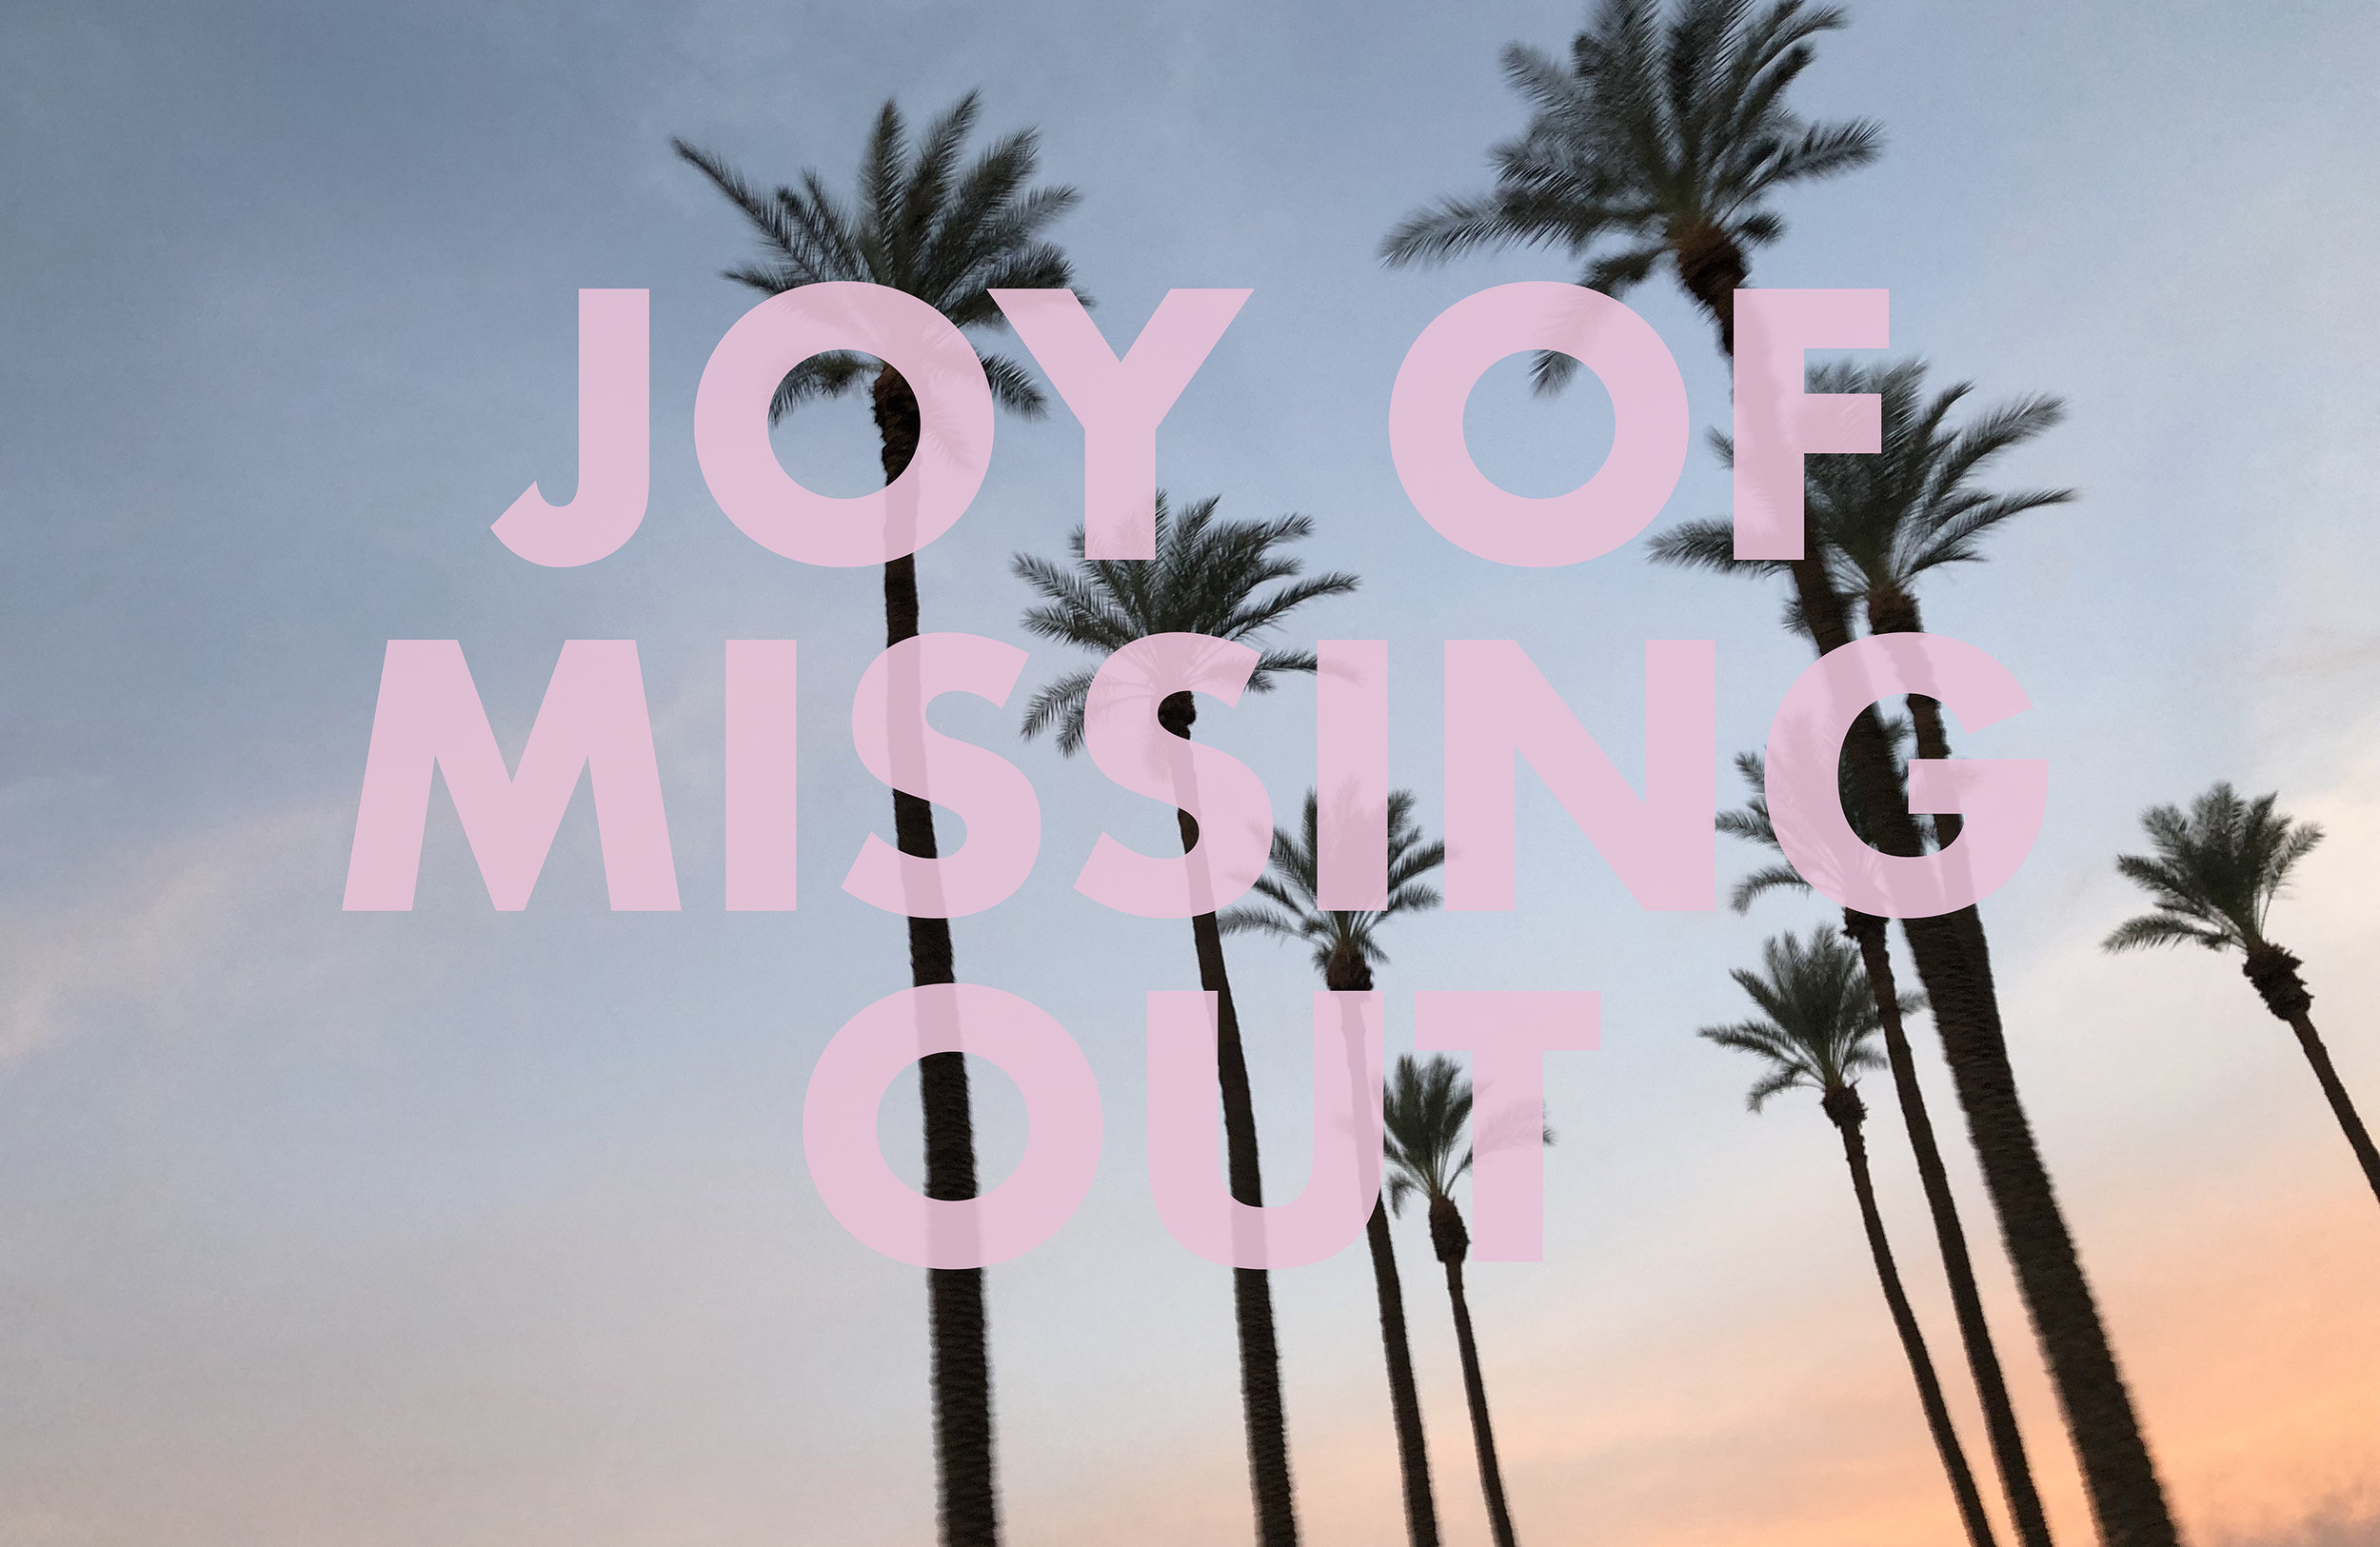 JOYOFMISSINGOUT,  2018  Indian Wells, CA